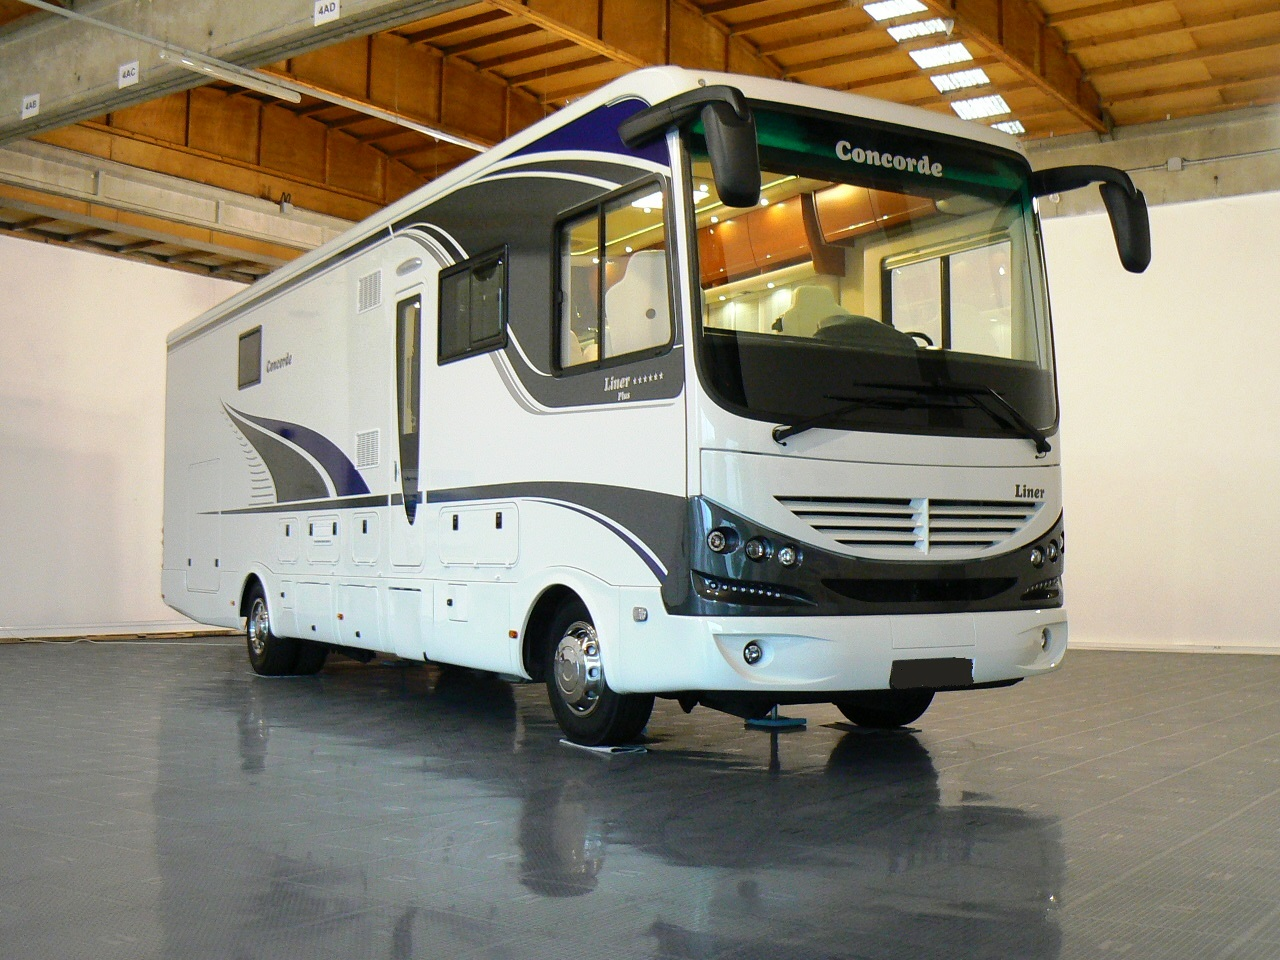 annonce concorde liner 1090 ms man camping car d occasion concorde liner 1090 ms man. Black Bedroom Furniture Sets. Home Design Ideas